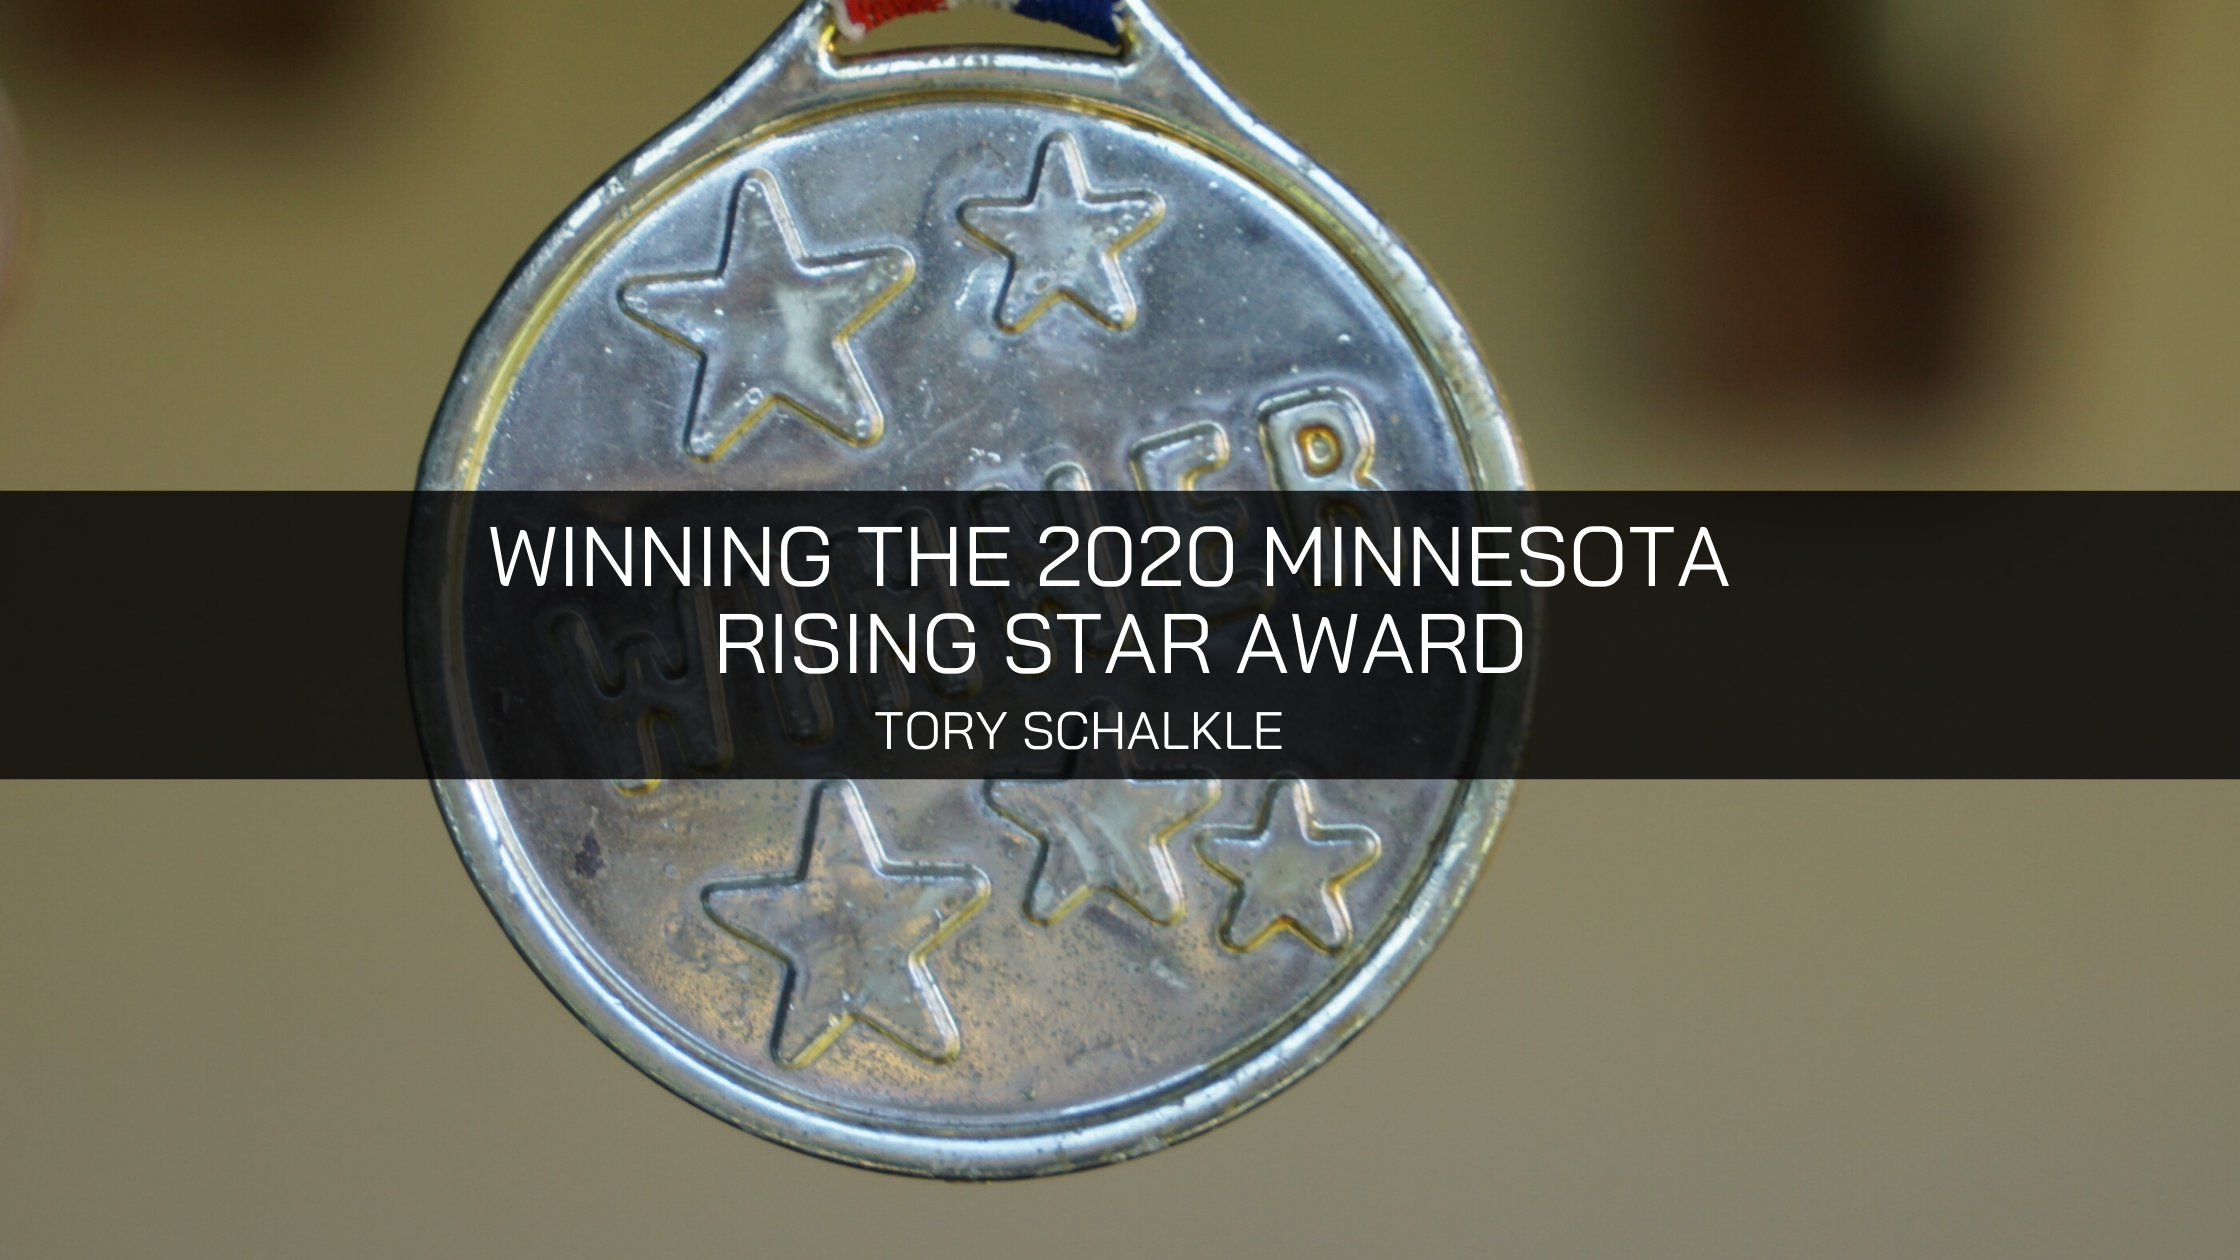 Tory Schalkle Wins the 2020 Minnesota Rising Star Award